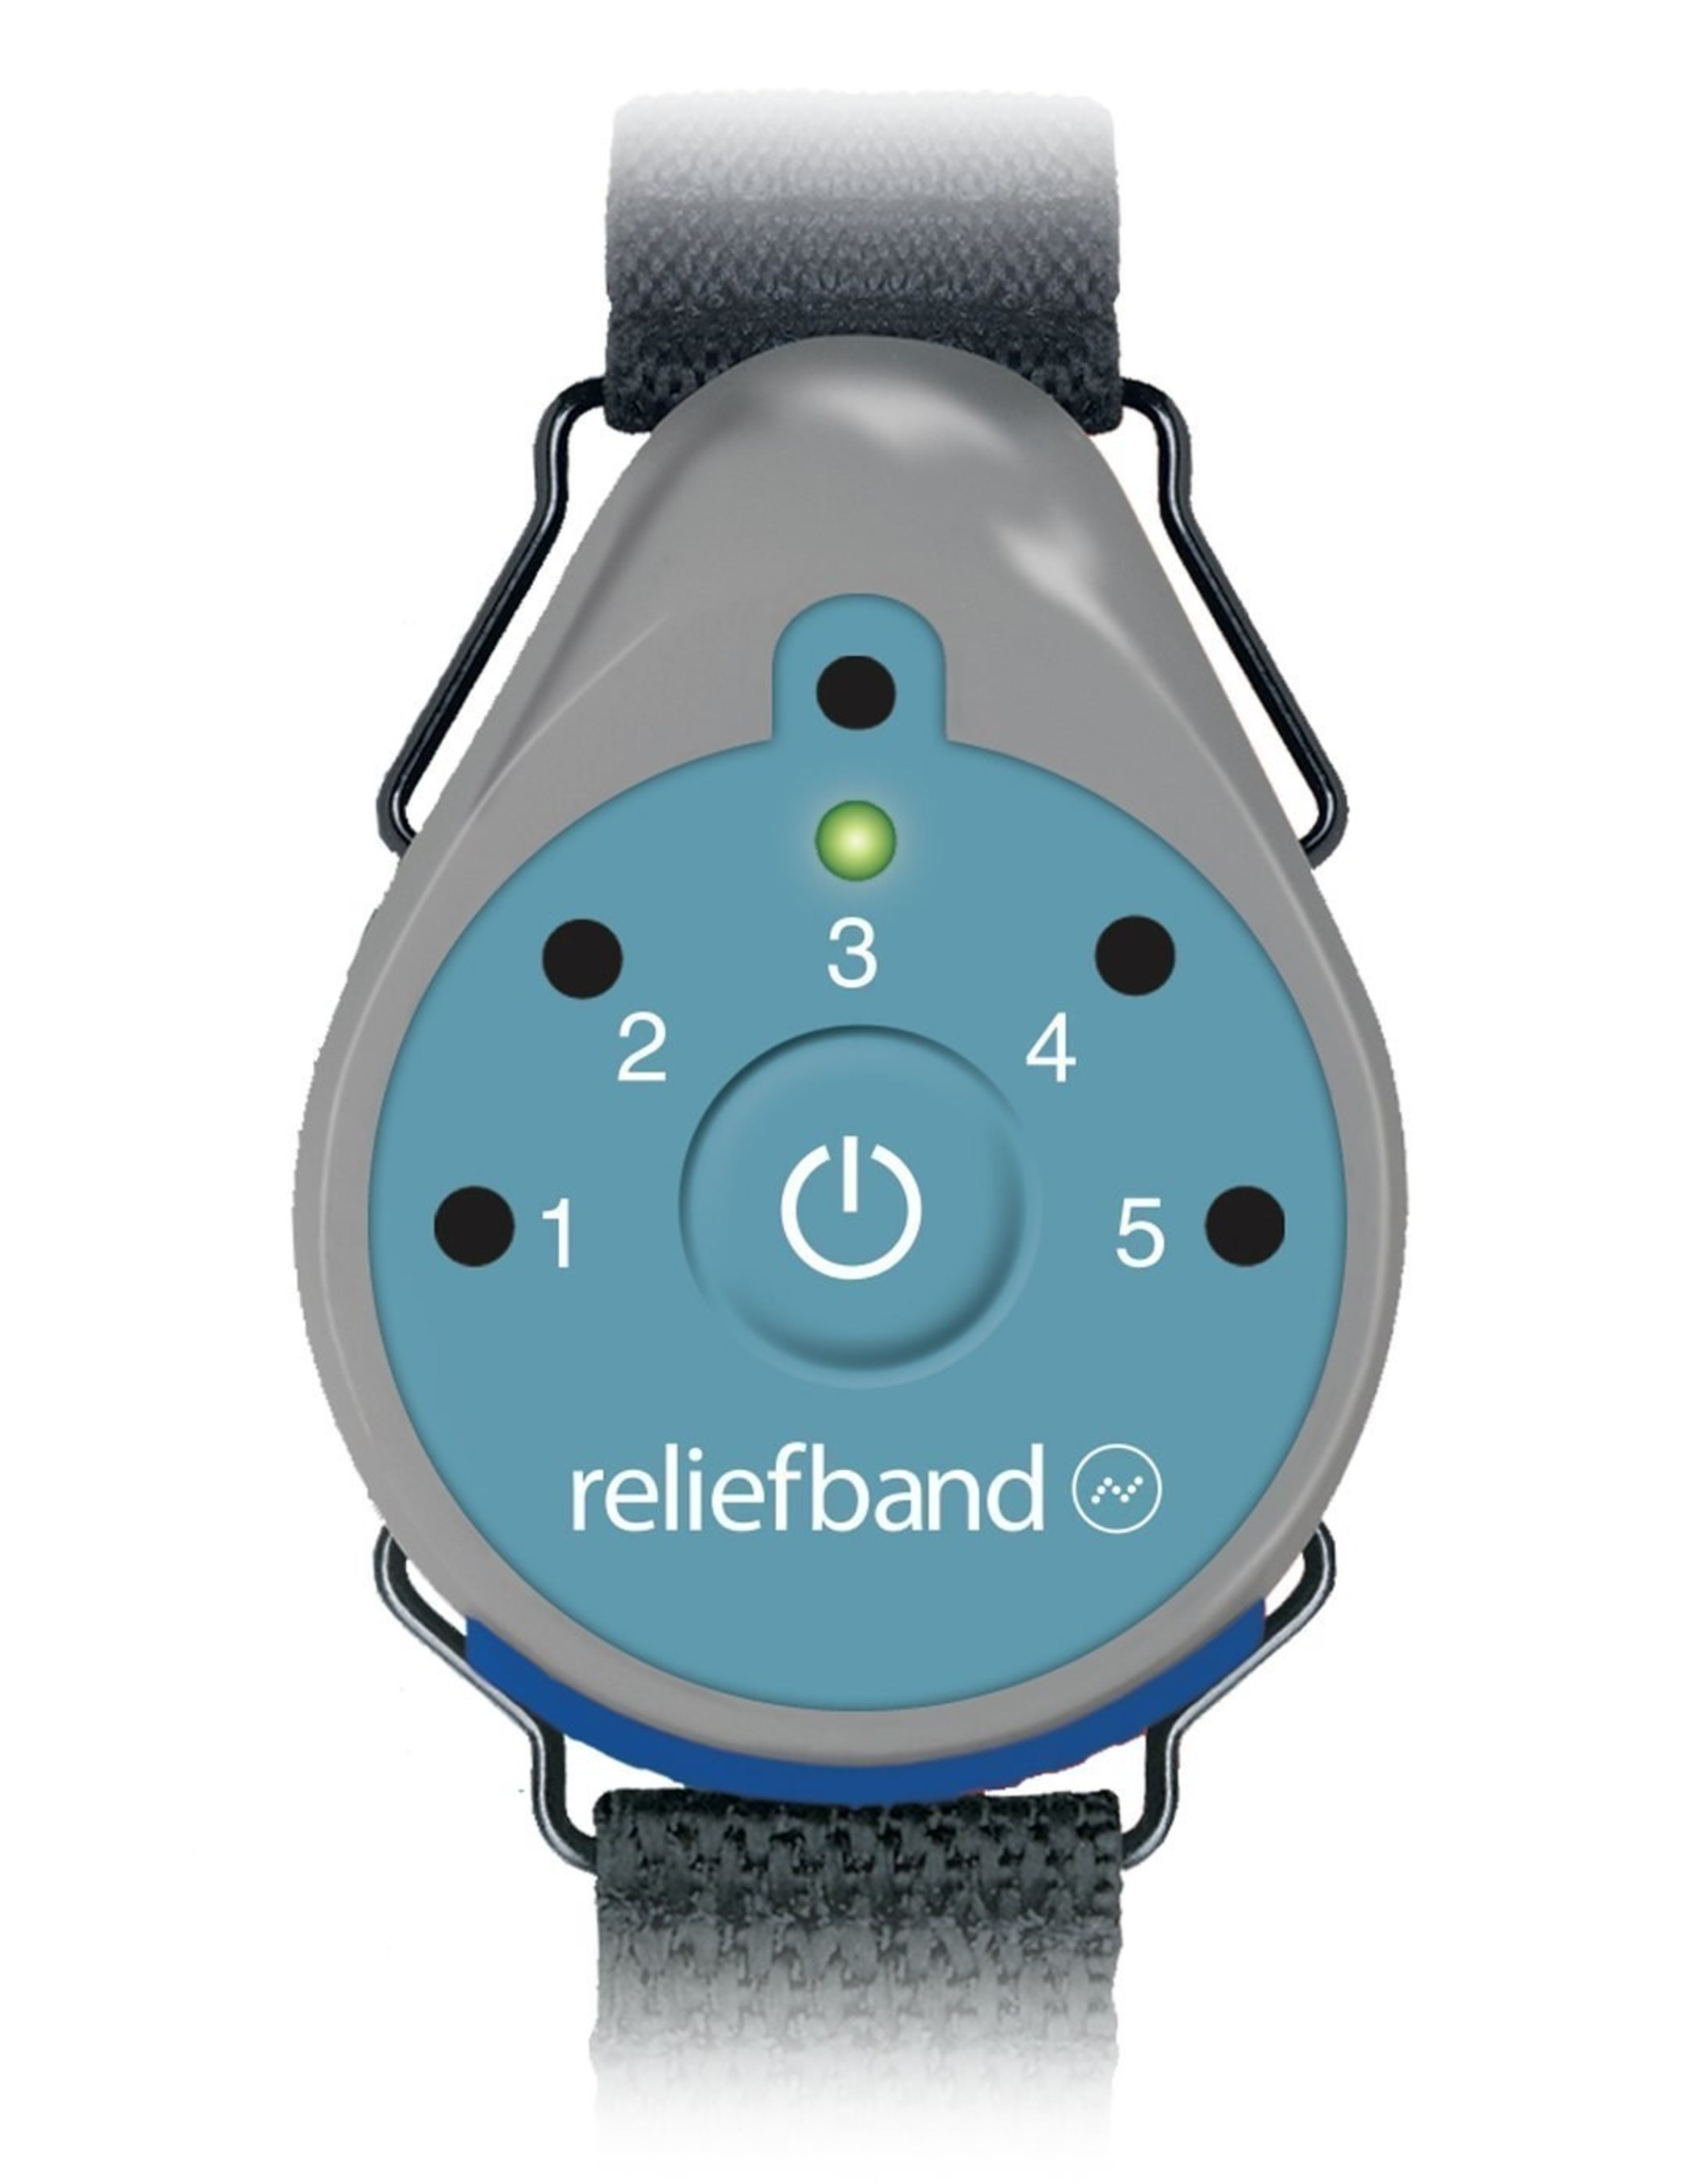 ReliefBand, an FDA cleared wearable device for the drug-free treatment of nausea and vomiting associated with morning and motion sickness.